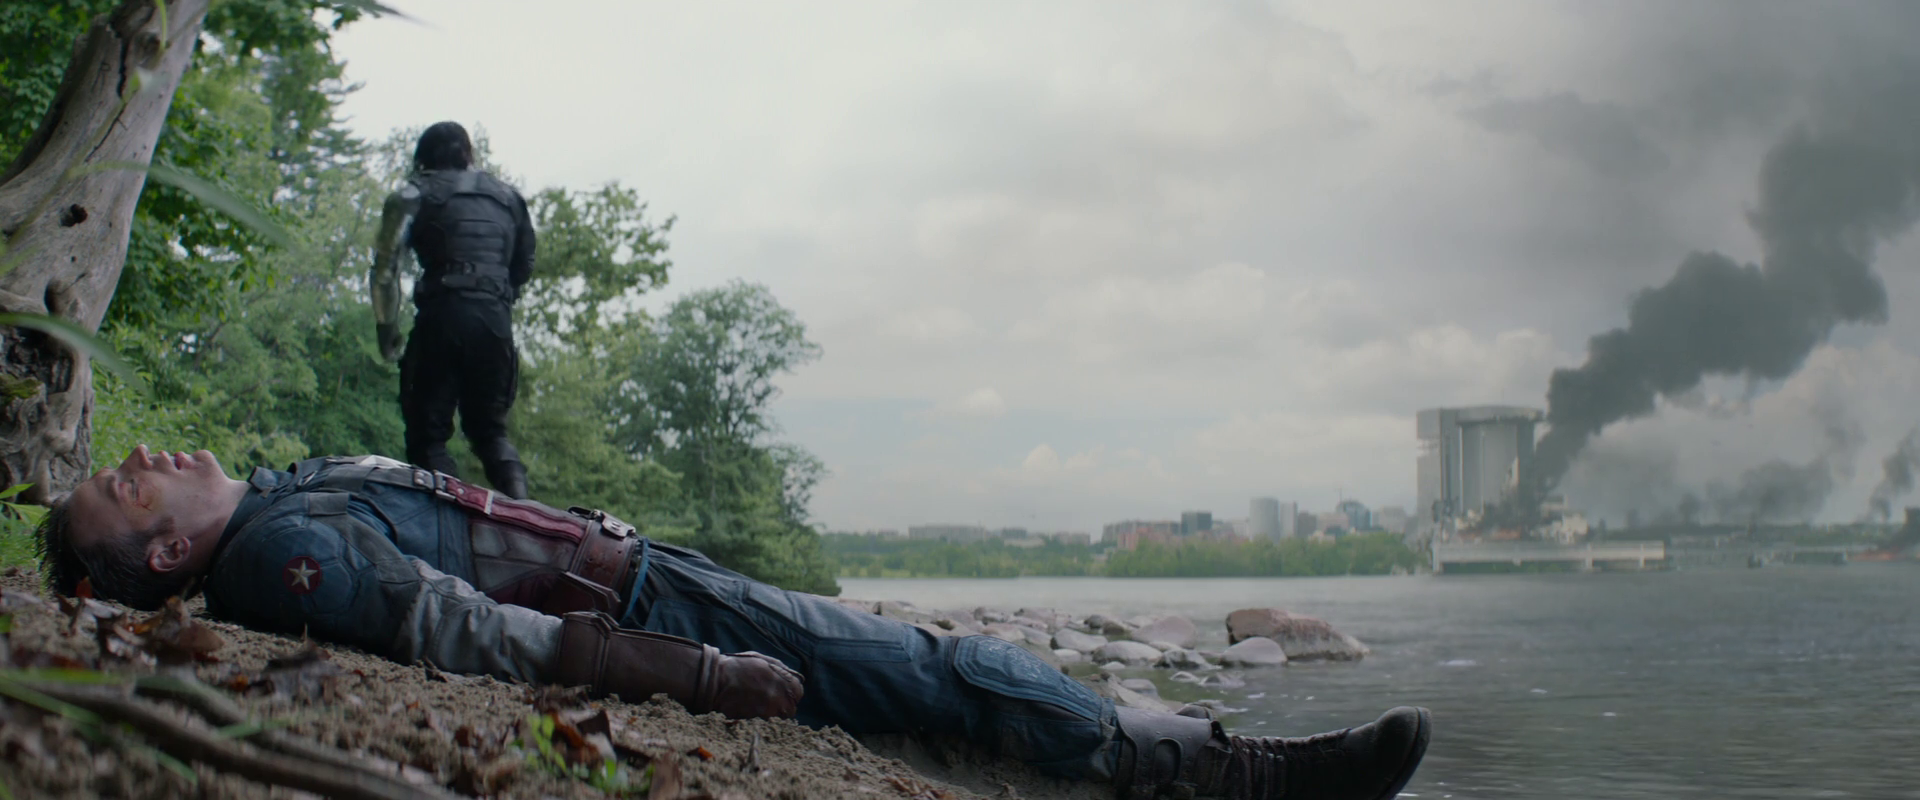 Captain America: Winter Soldier  (2014), Bucky and Cap on the west shore of the Potomac.